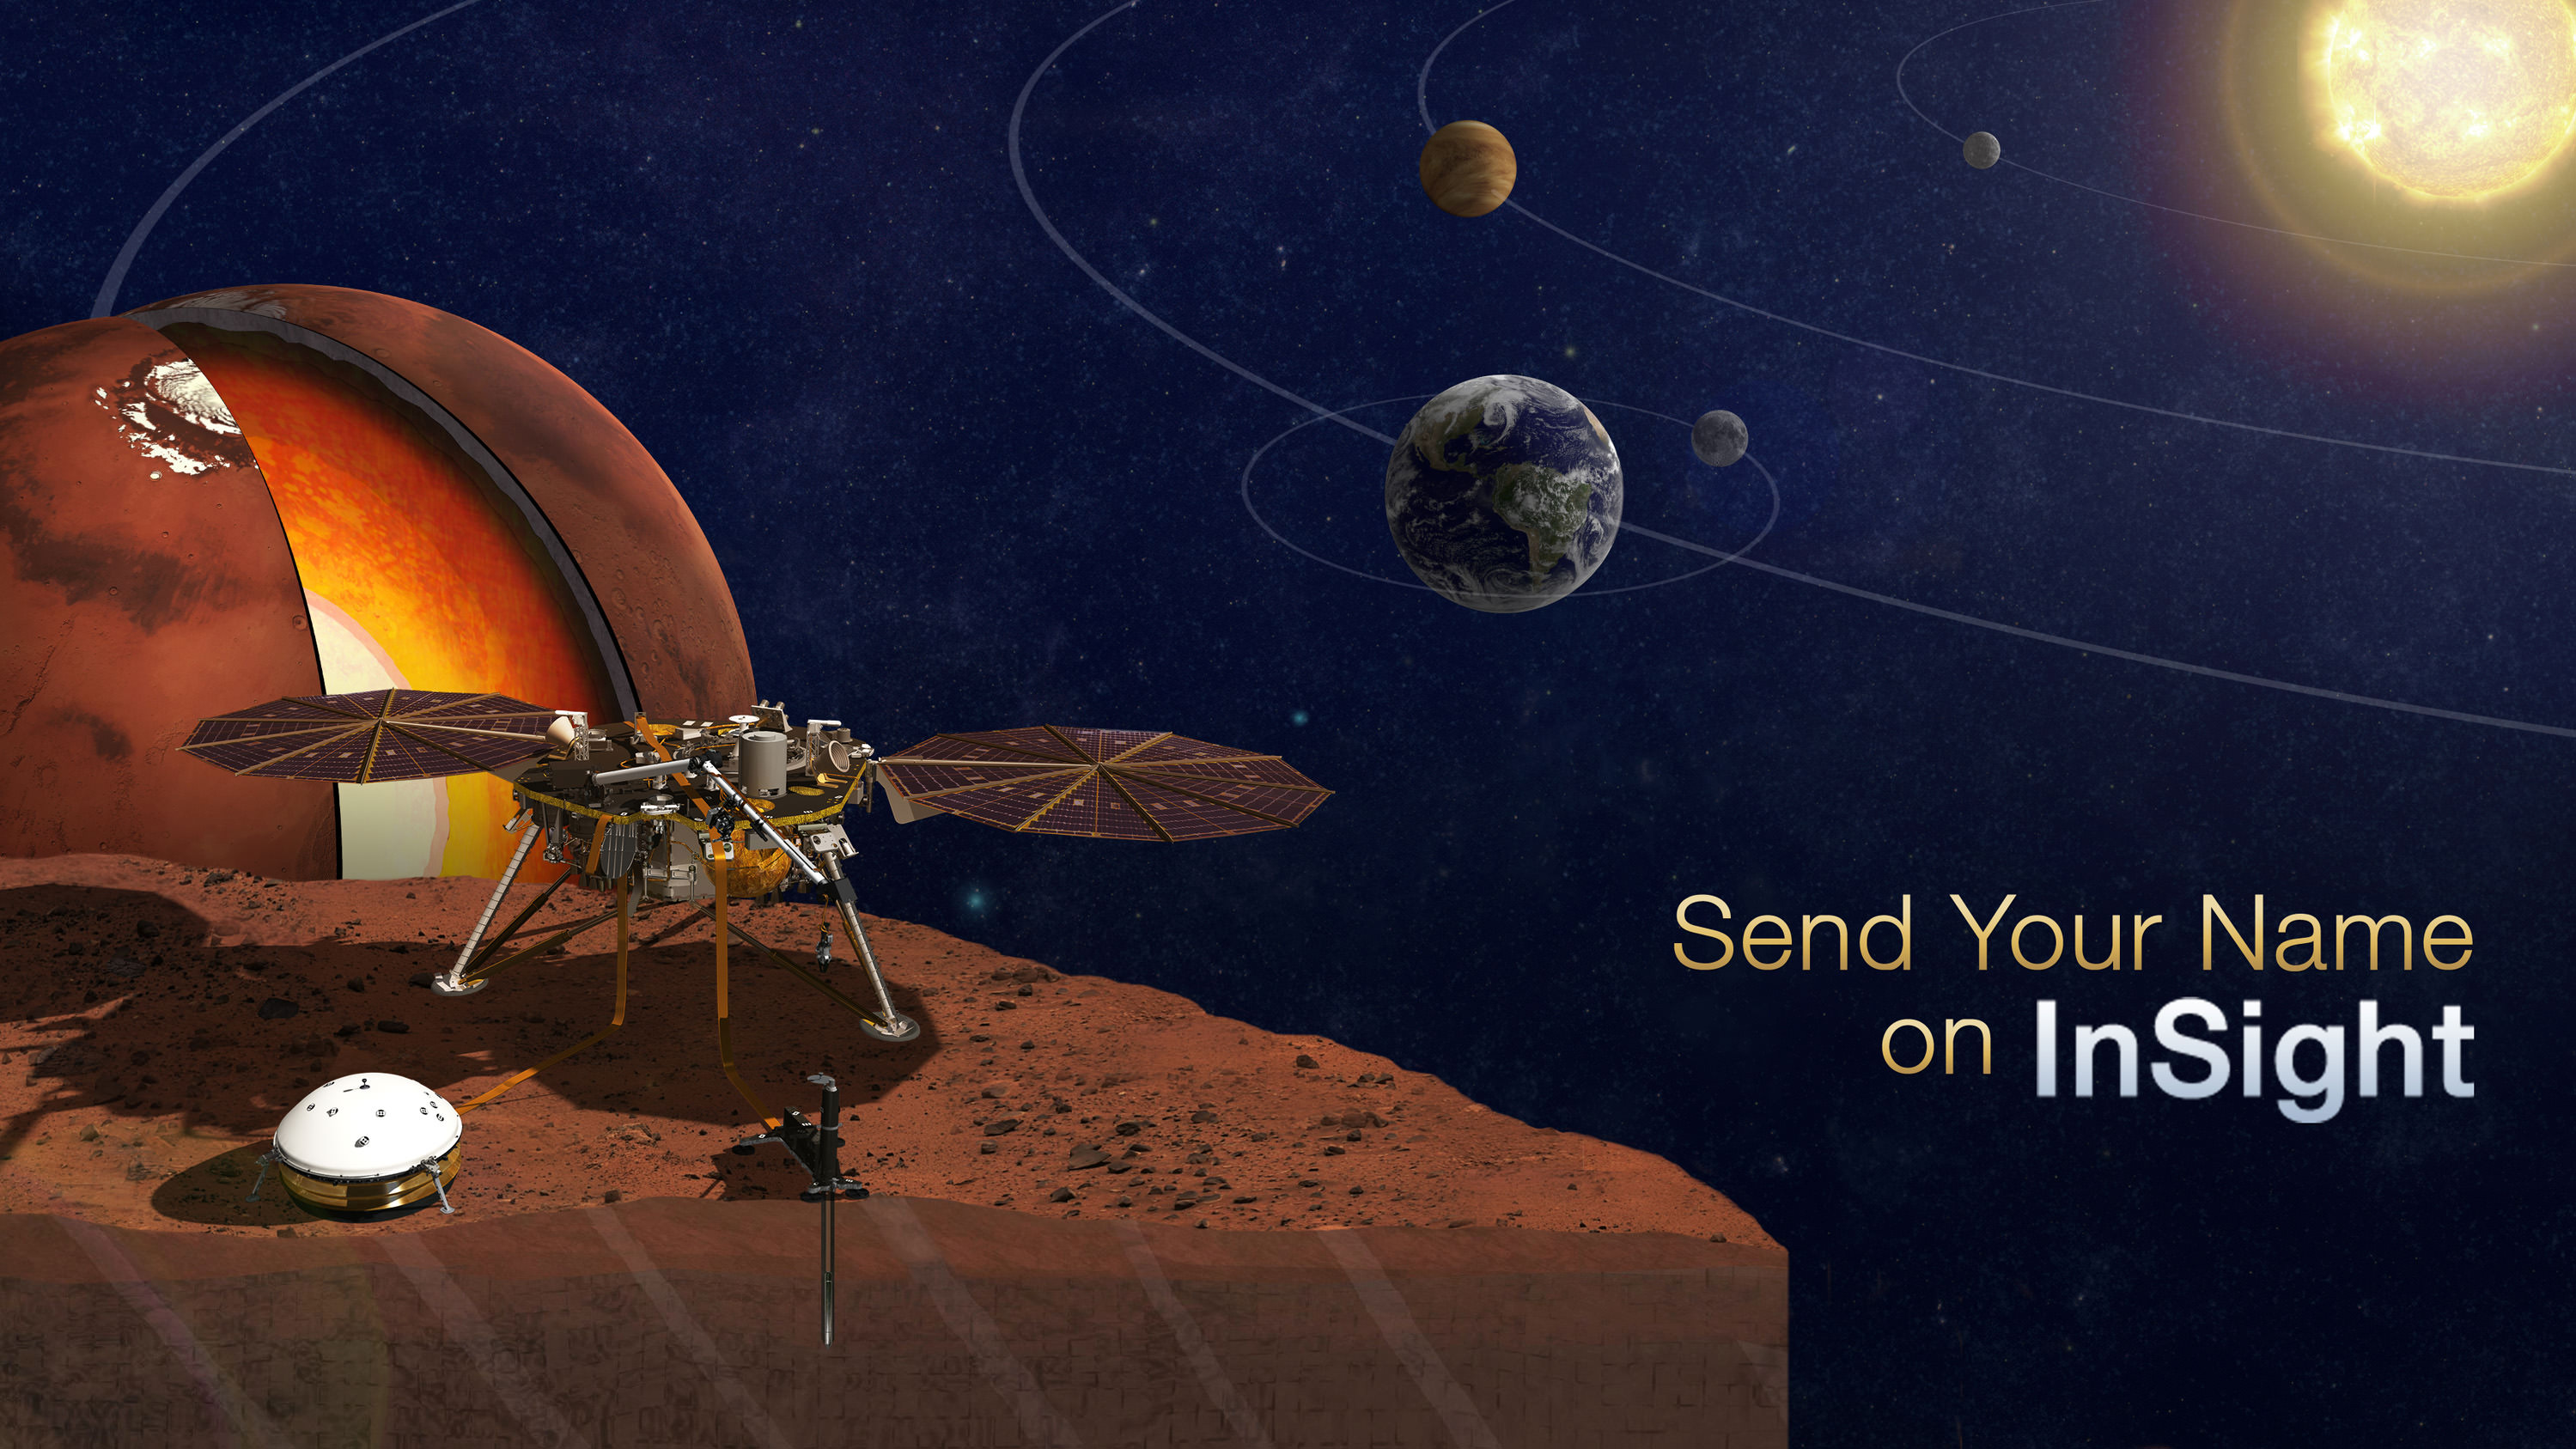 Sign up to send your name to Mars on InSight, NASA's next mission to Mars launching in March 2016.  Credit: NASA